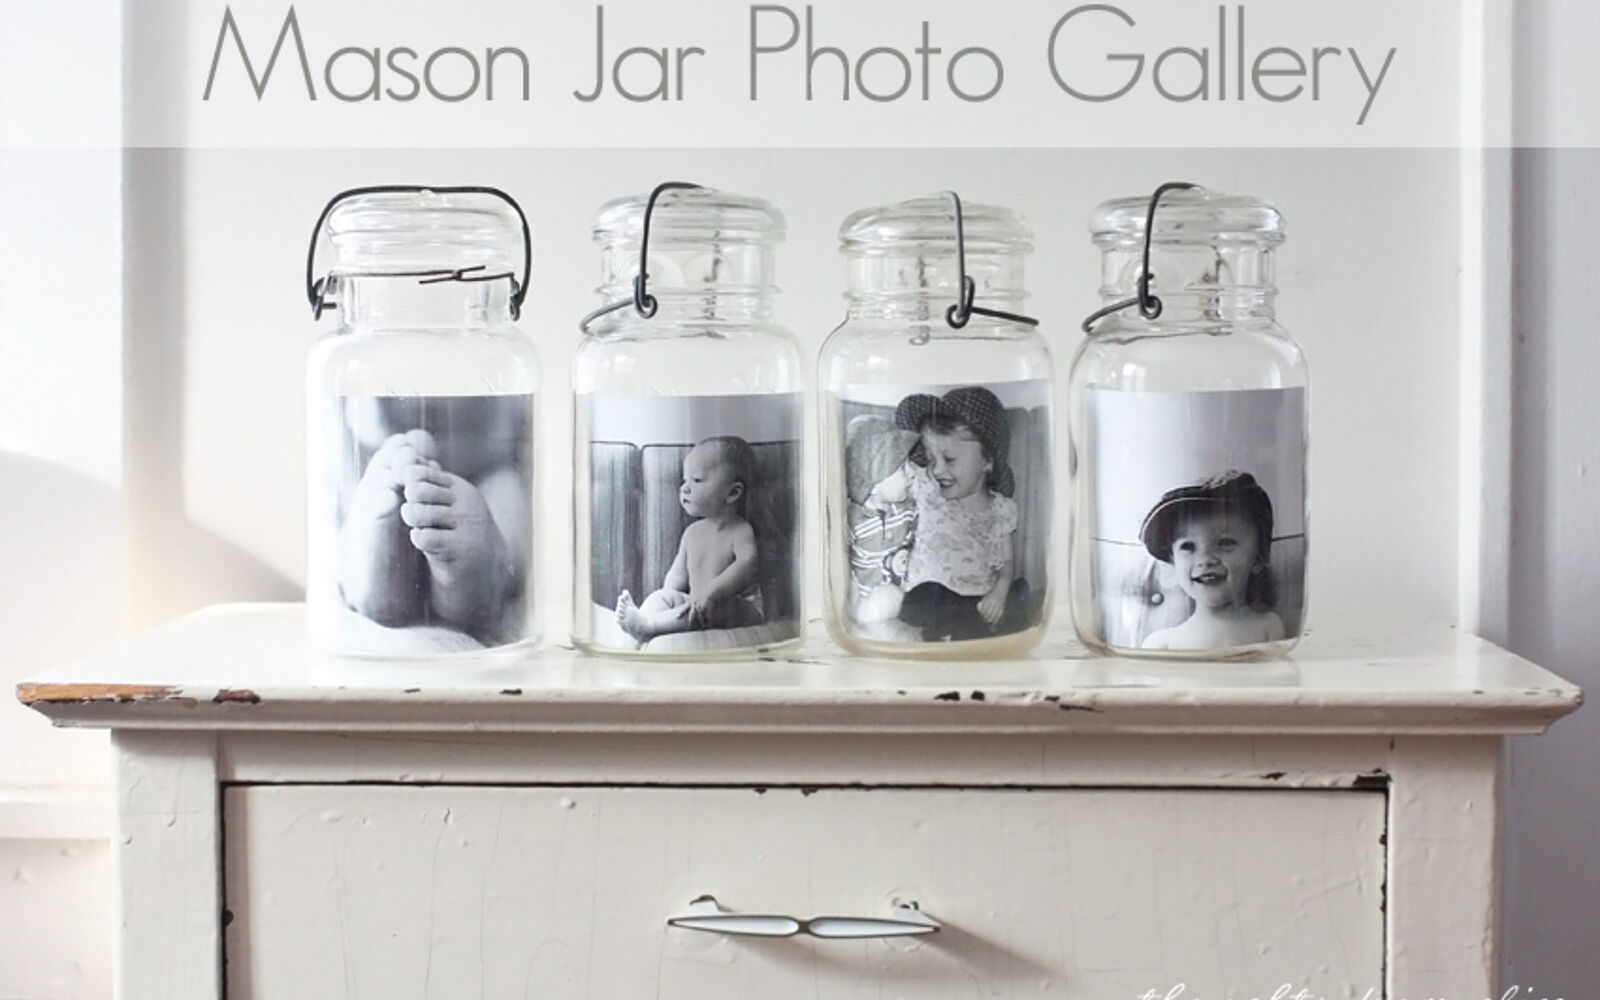 s 30 great mason jar ideas you have to try, Elegant Simple Photo Gallery